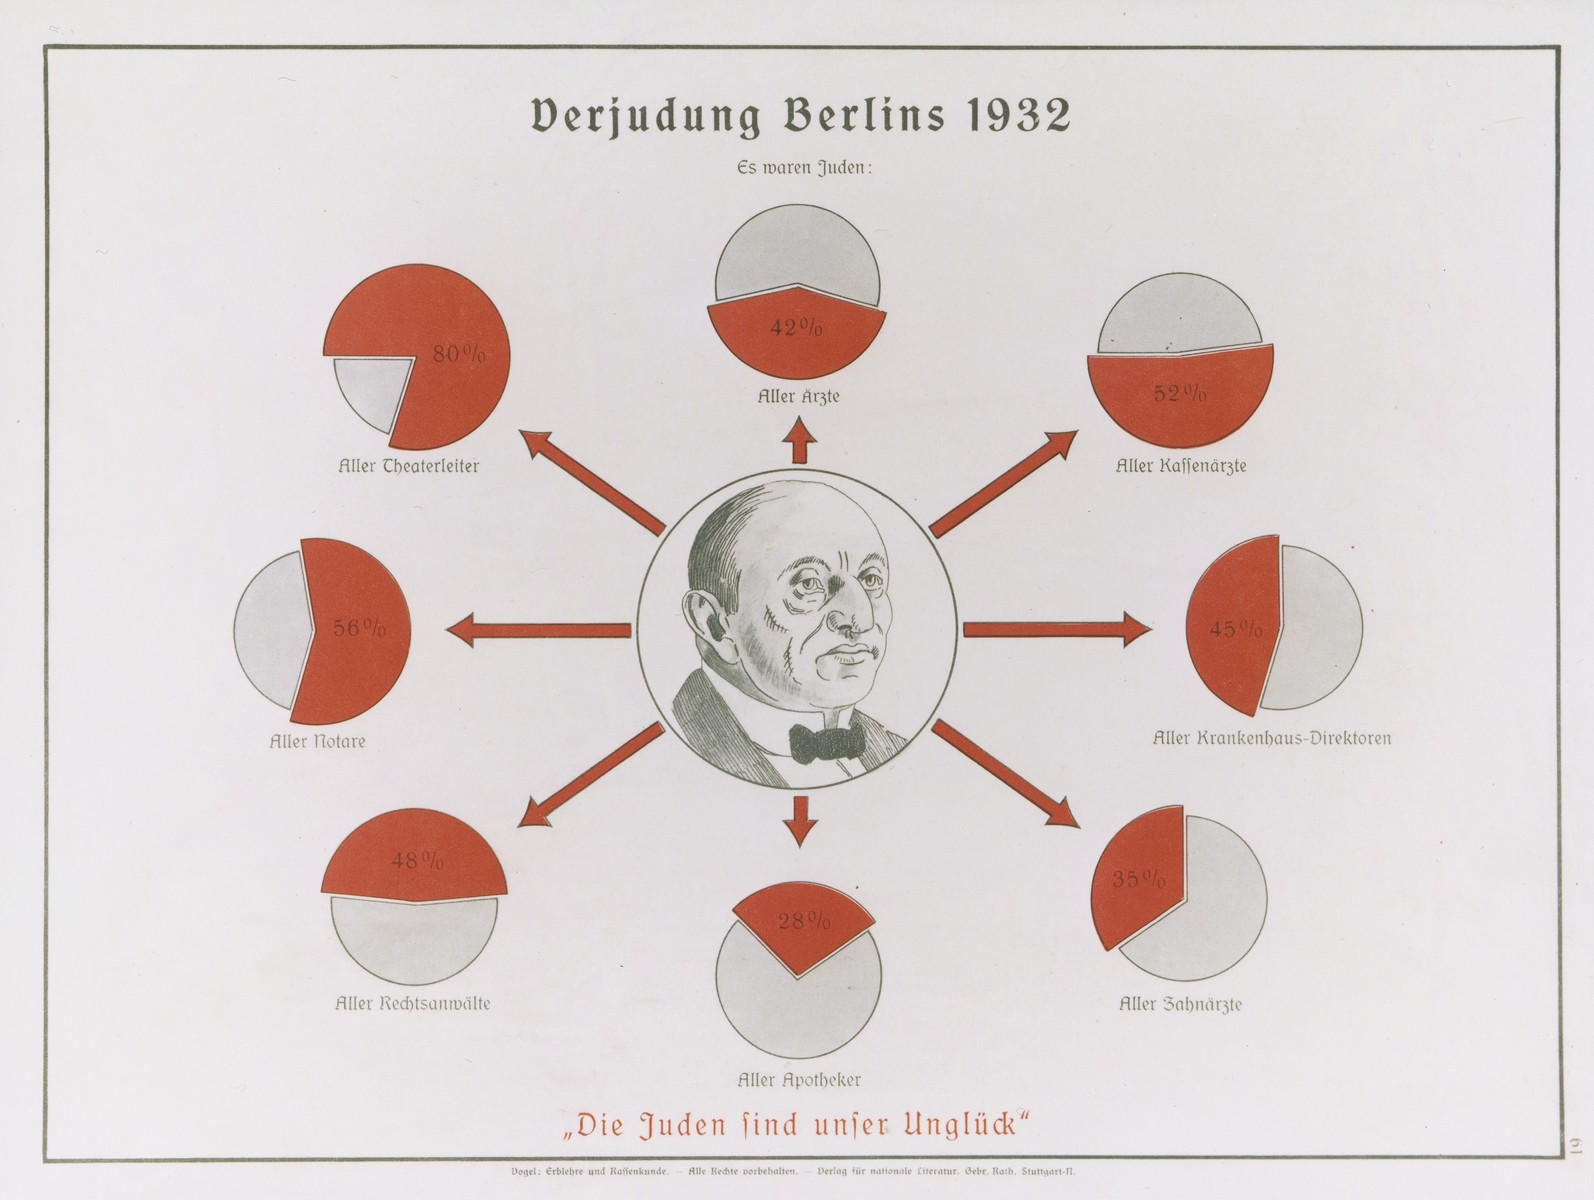 """Eugenics poster entitled """"The Judaizing of Berlin 1932.""""  The text of the pie charts reads (clockwise from the top):  Jews were 42% of all physicians, 52% of all insurance physicians, 45% of all hospital directors, 35% of all dentists, 28% of all pharmicists, 48% of all lawyers, 56% of all notaries, and 80% of all directors of theaters. The German text at the bottom reads: """"The Jews are our misfortune.""""  This poster is no.61 in a series entitled, """"Erblehre und Rassenkunde"""" (Theory of Inheritance and Racial Hygiene), published by the Verlag für nationale Literatur (Publisher for National Literature), Stuttgart."""